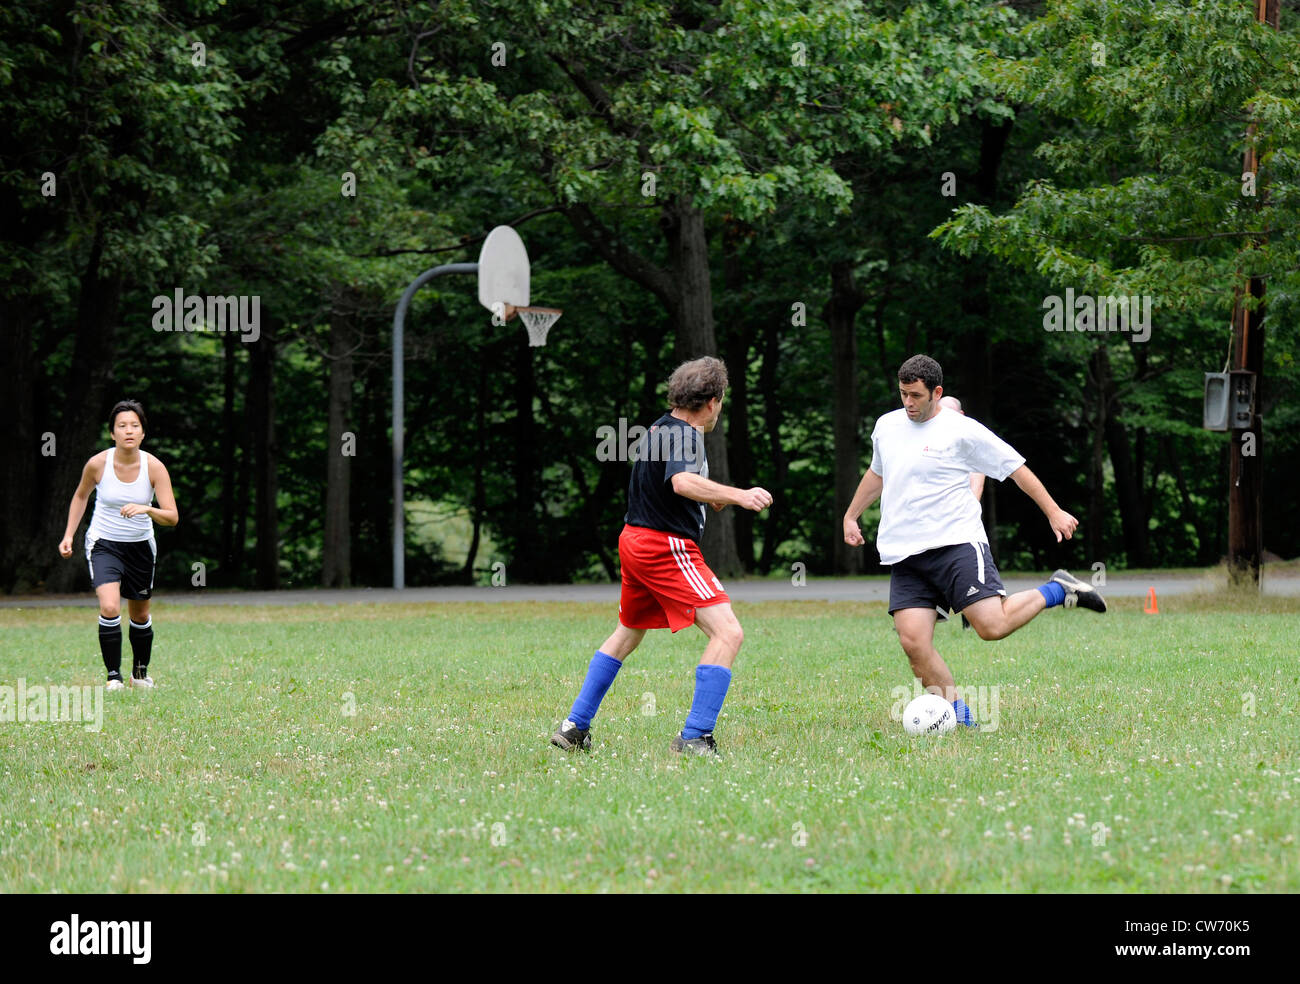 Pickup soccer game in Oriente Rock Park di domenica. Immagini Stock